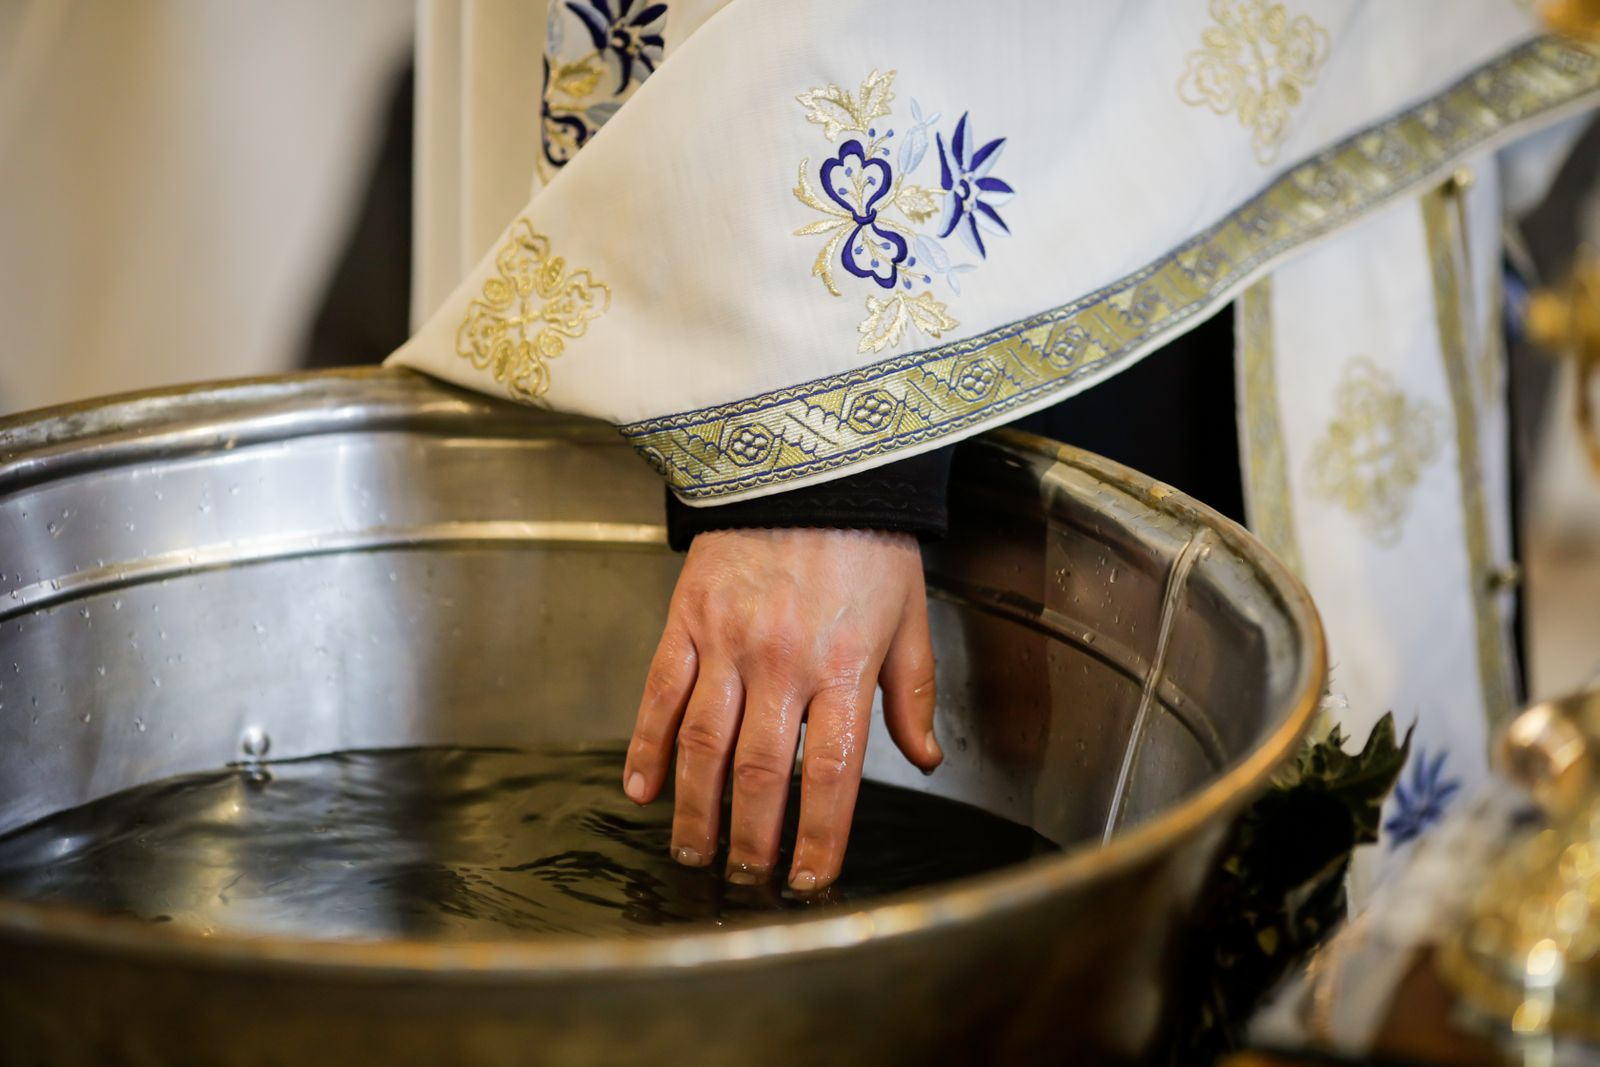 Details with the hand of an Orthodox priest testing the warmth of the water in the baptismal font.